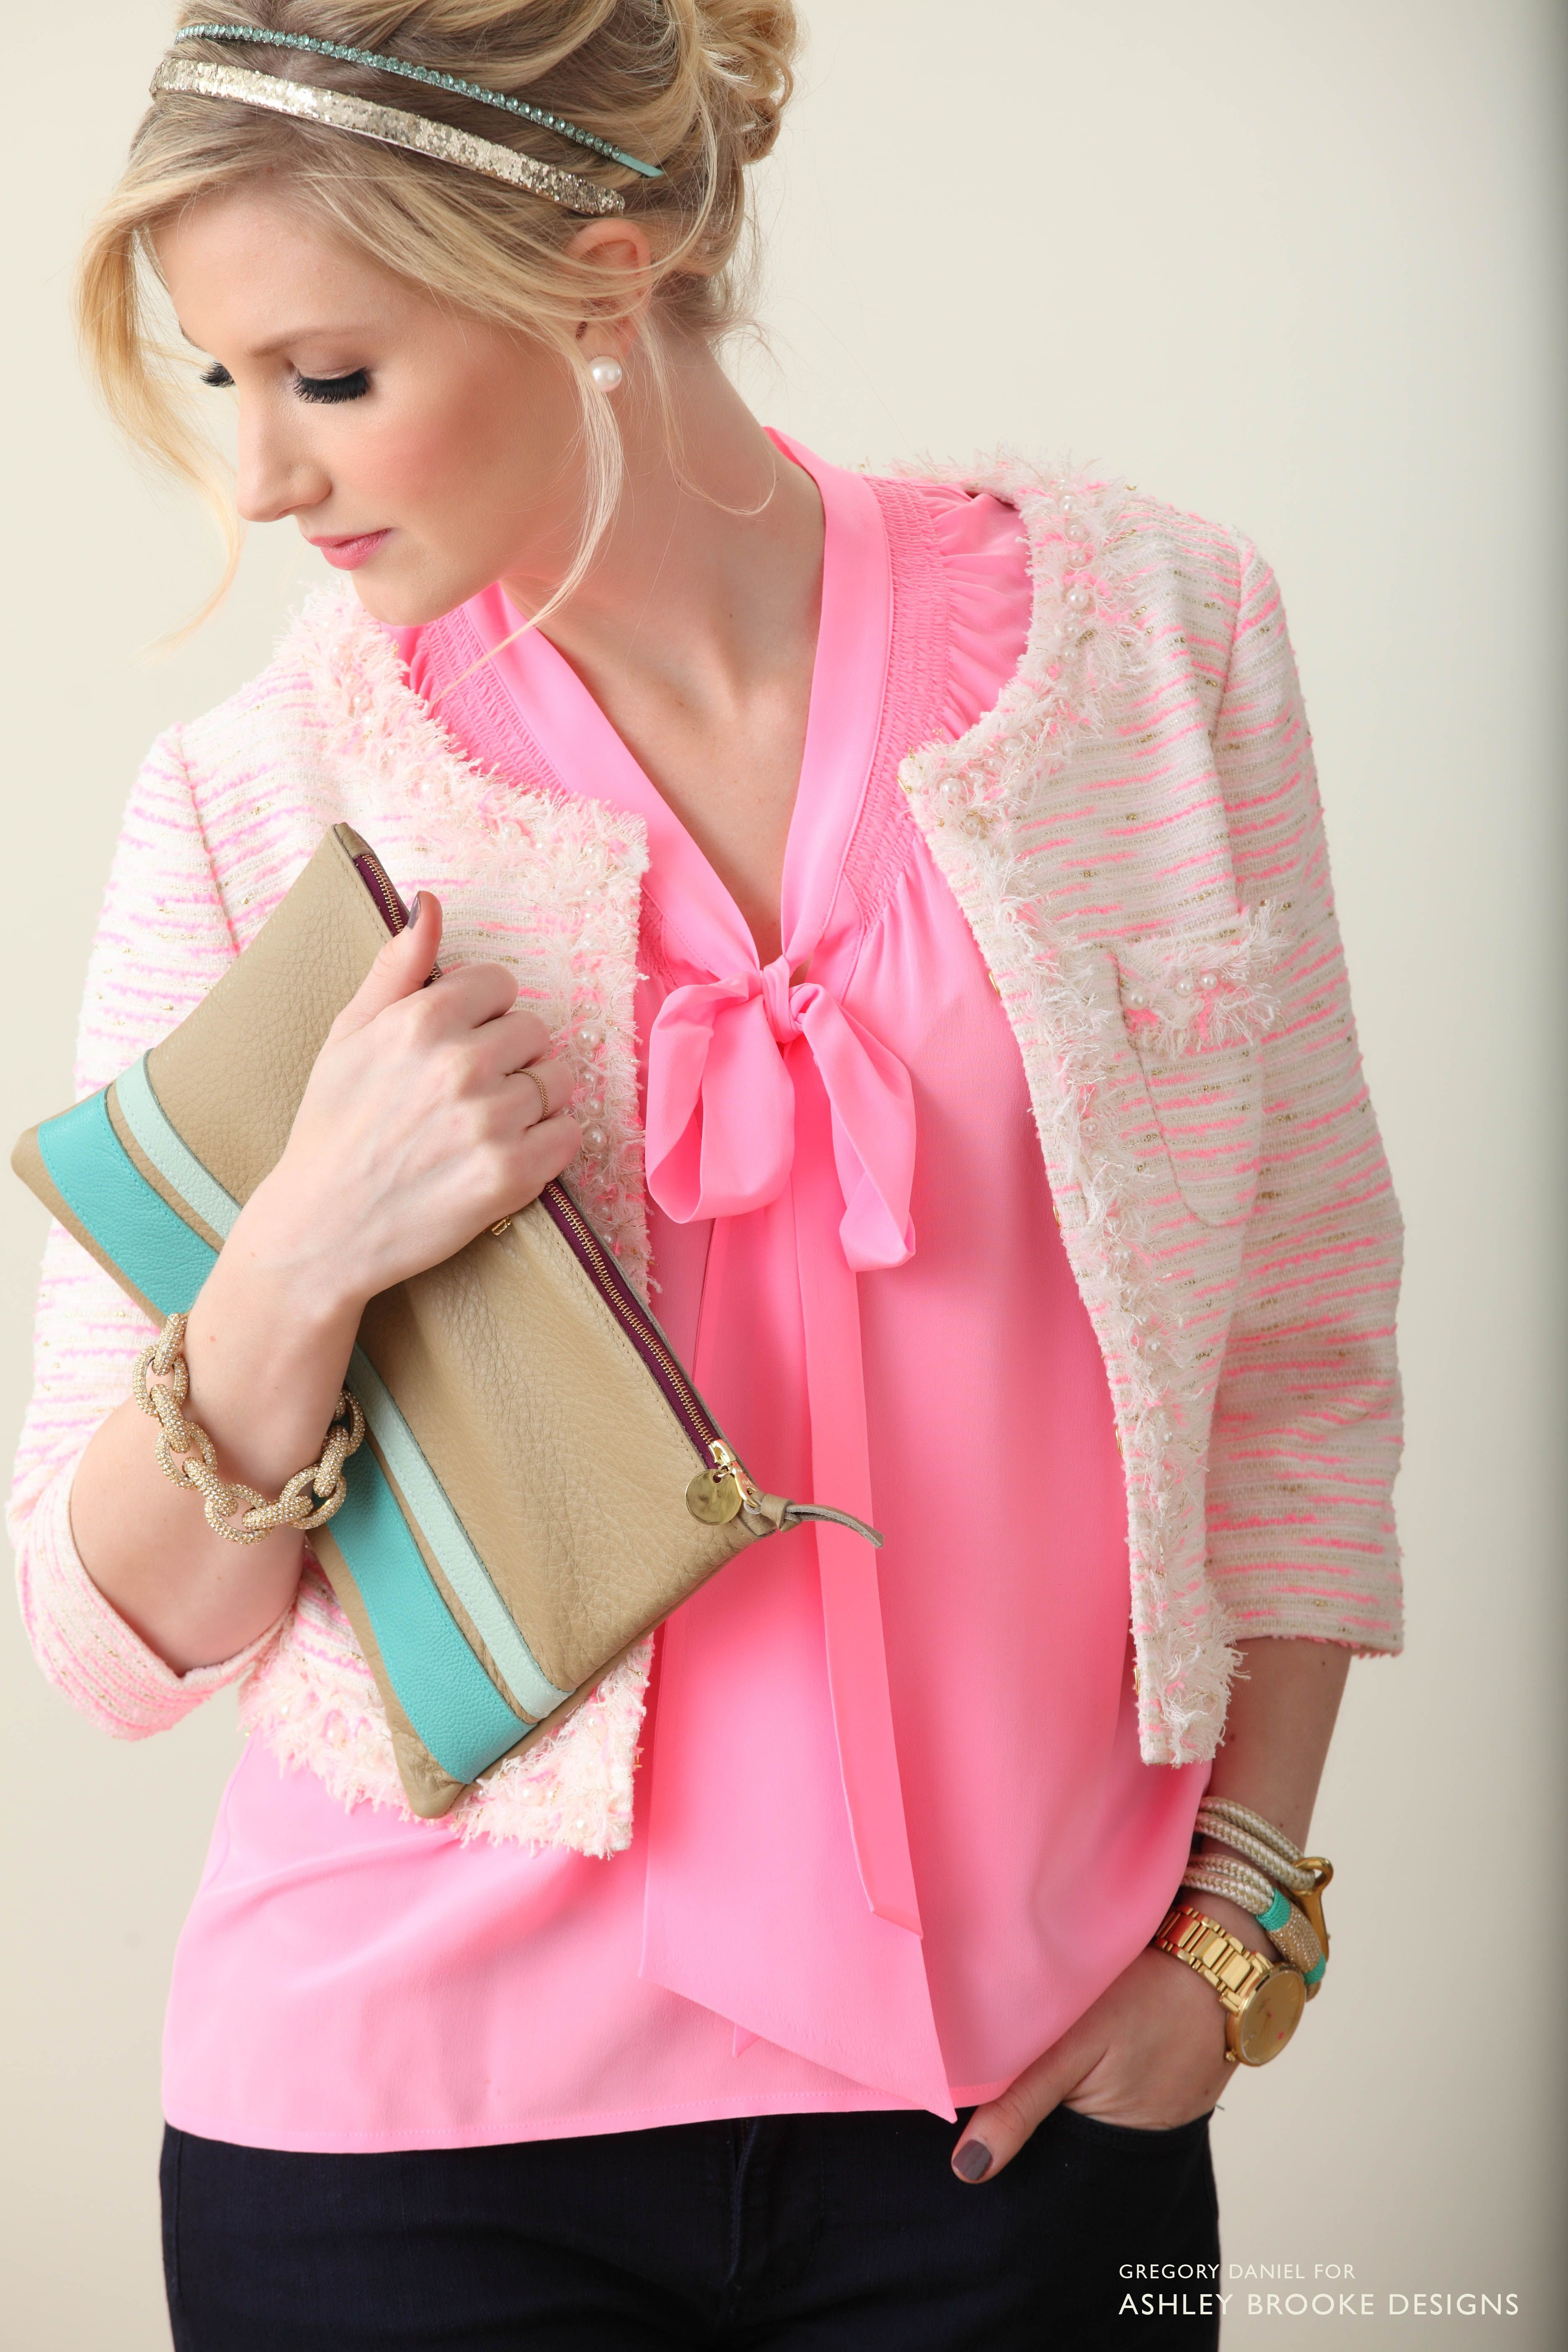 Lilly Pulitzer Dahlia Top in Sparkle Pink and Lia Jacket on Ashley ...